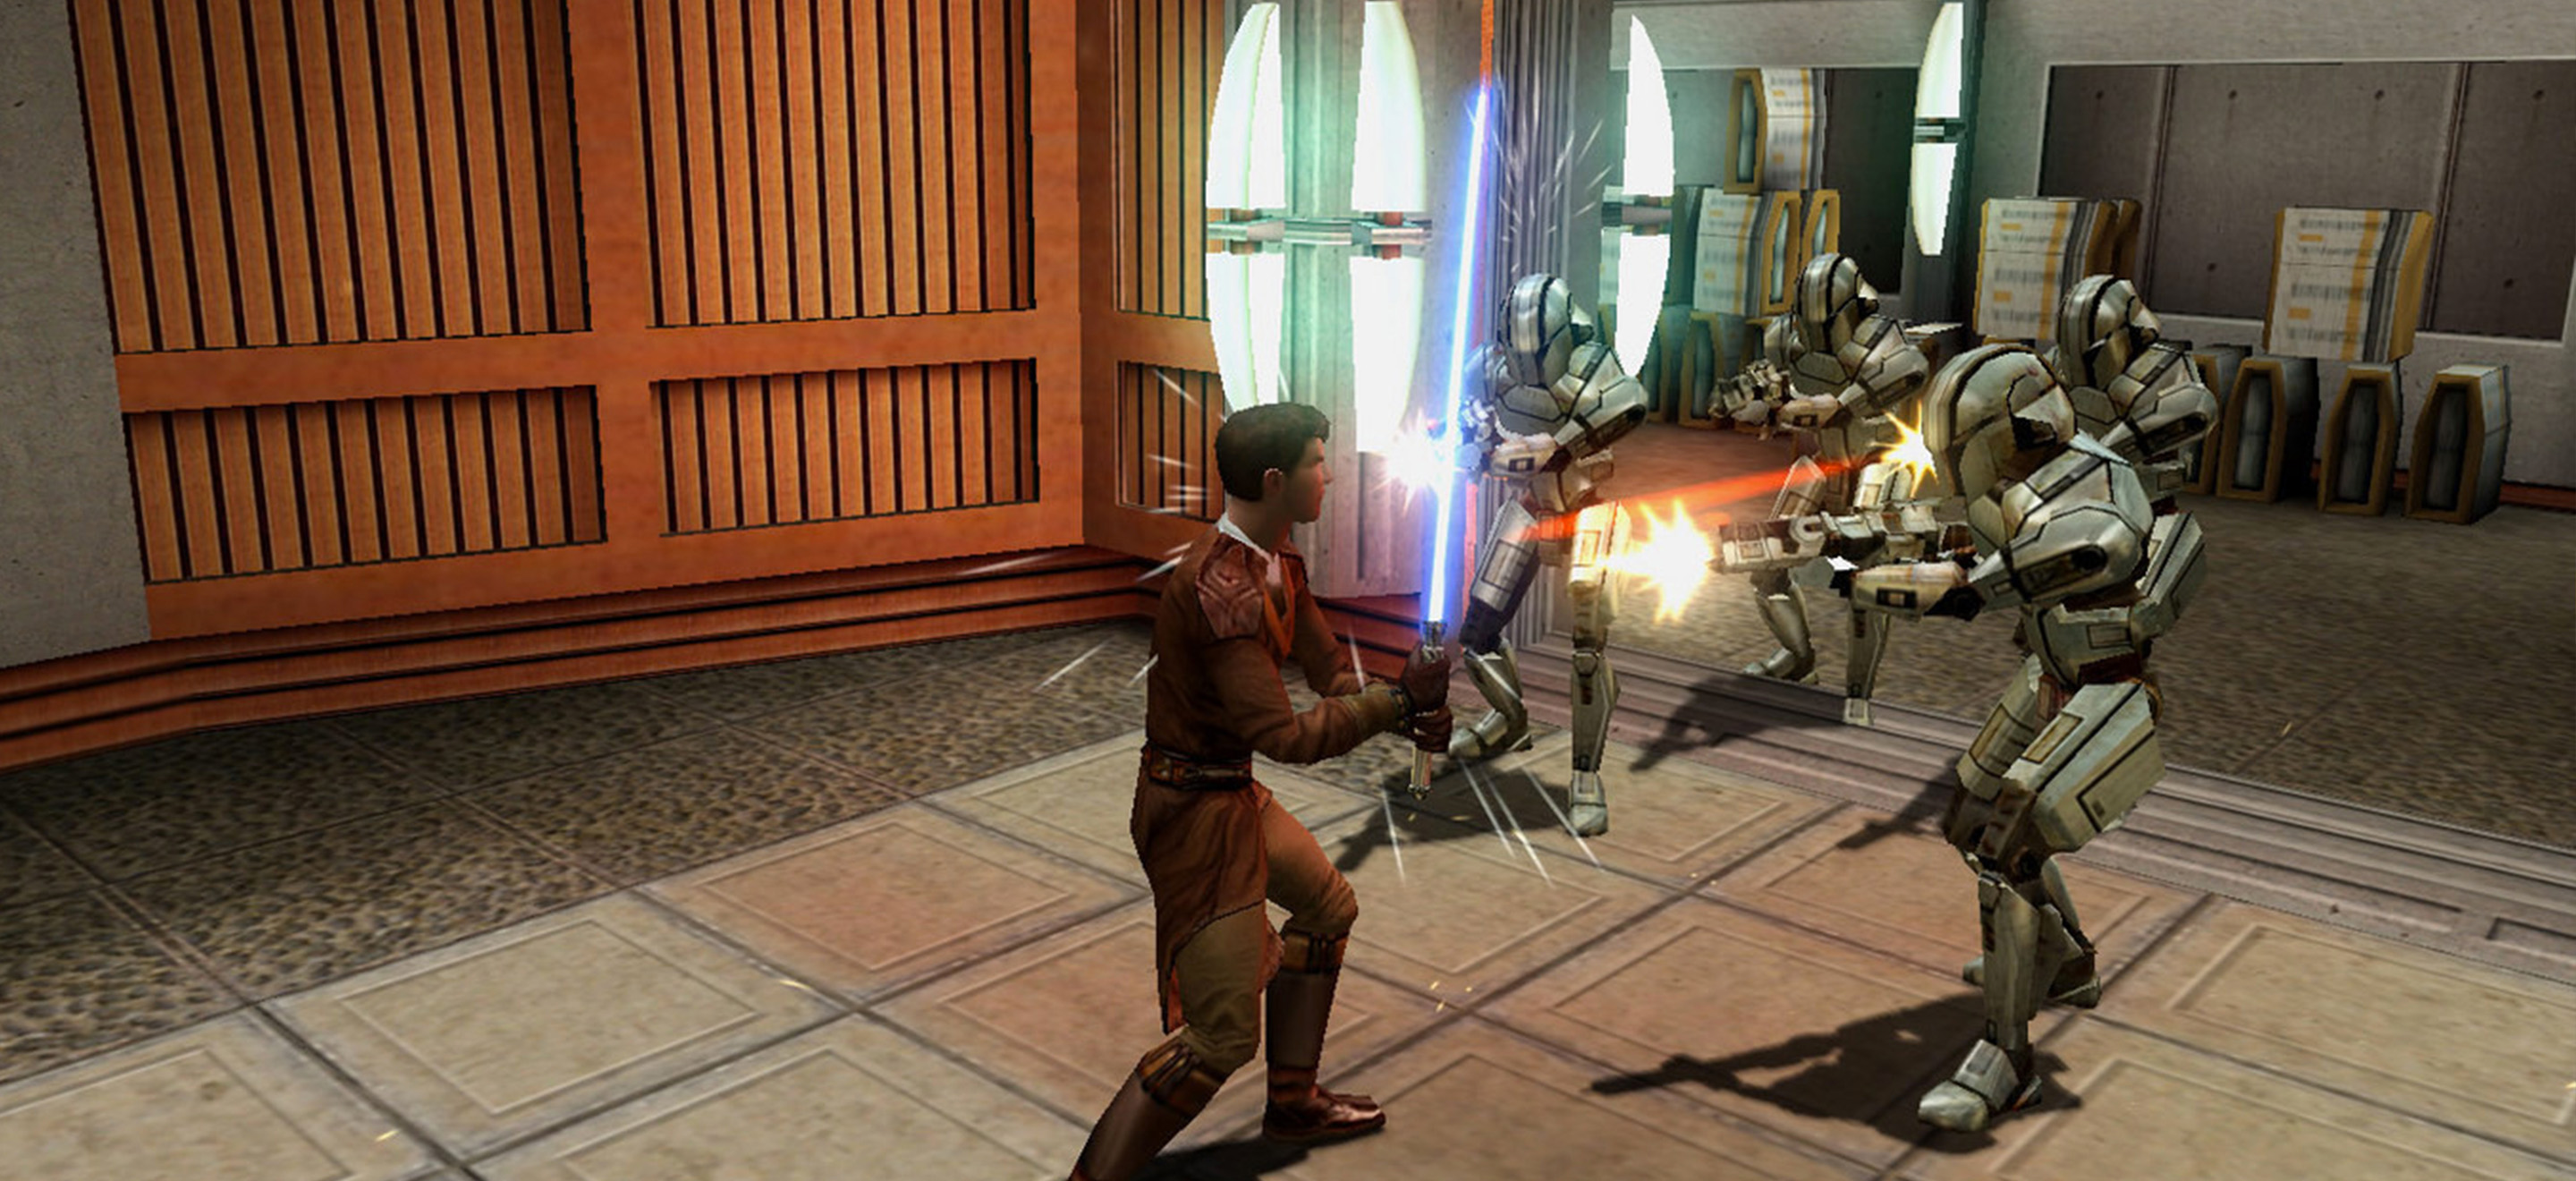 Pourra-t-on faire mieux que Star Wars : Knights of the Old Republic ?